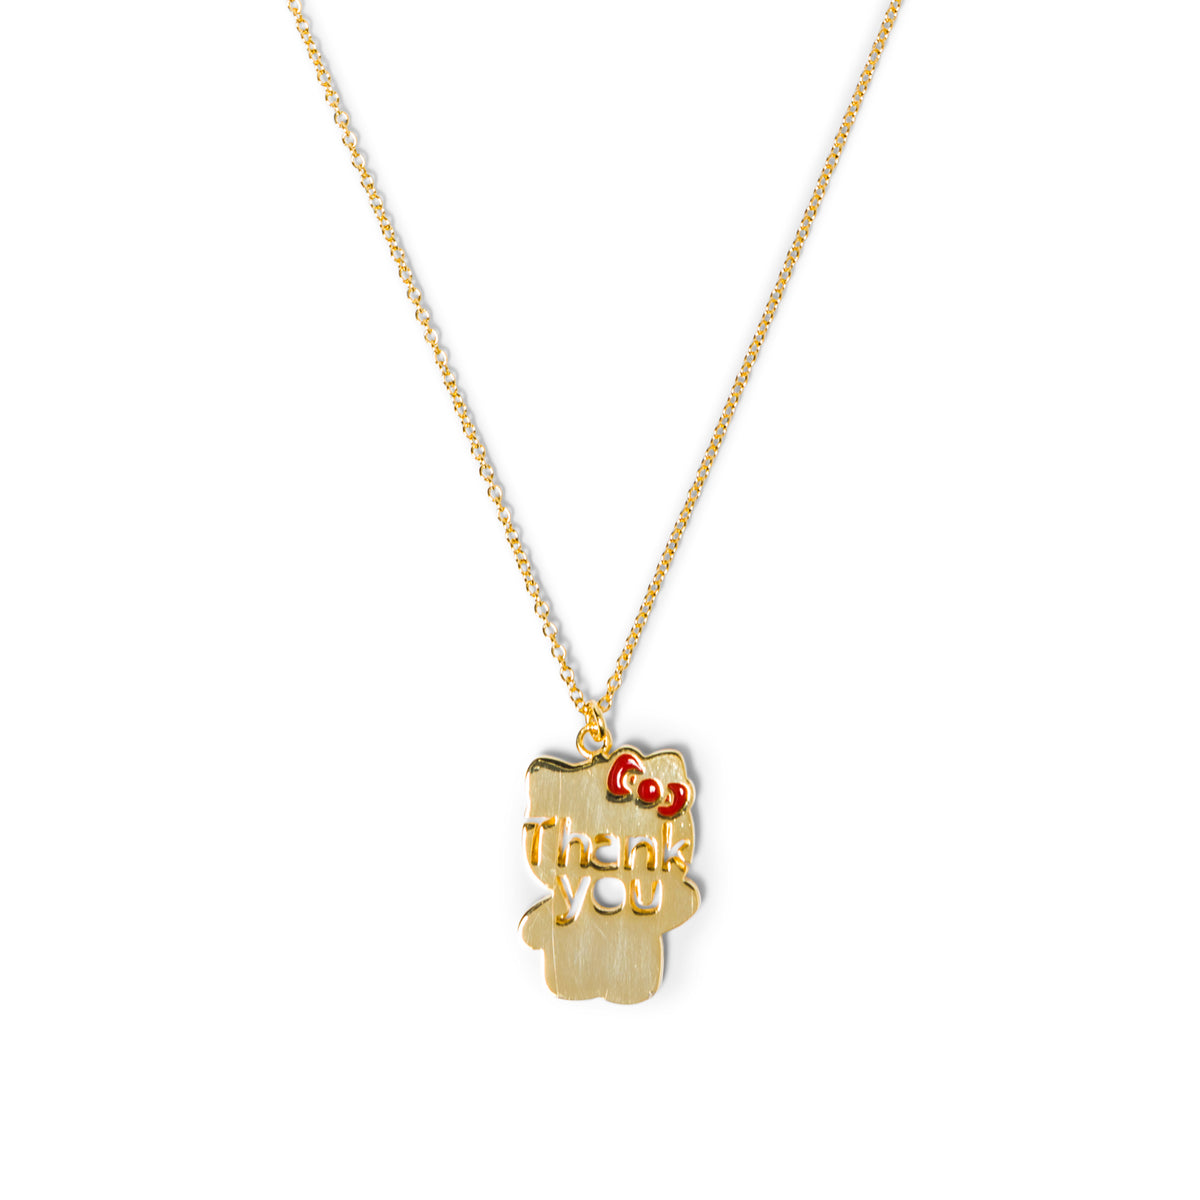 Hello Kitty x 5108 Charm Necklace Thank You